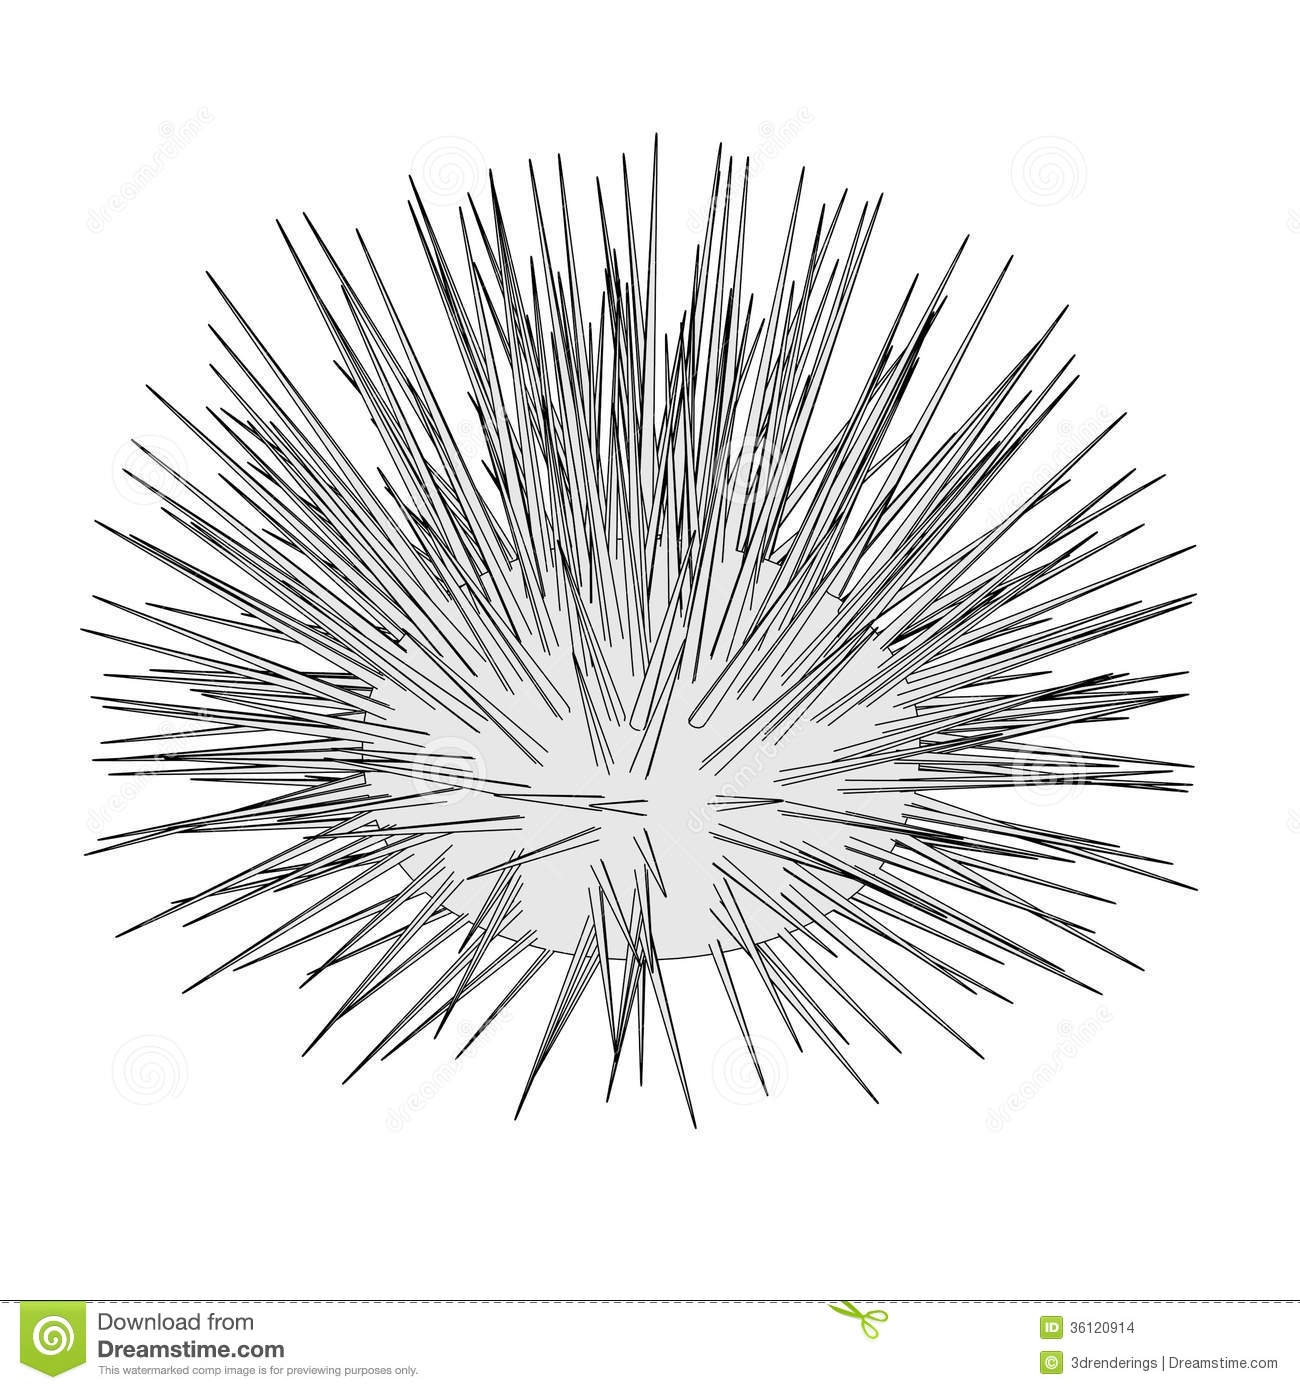 coral reef coloring page - stock images image sea urchin cartoon image